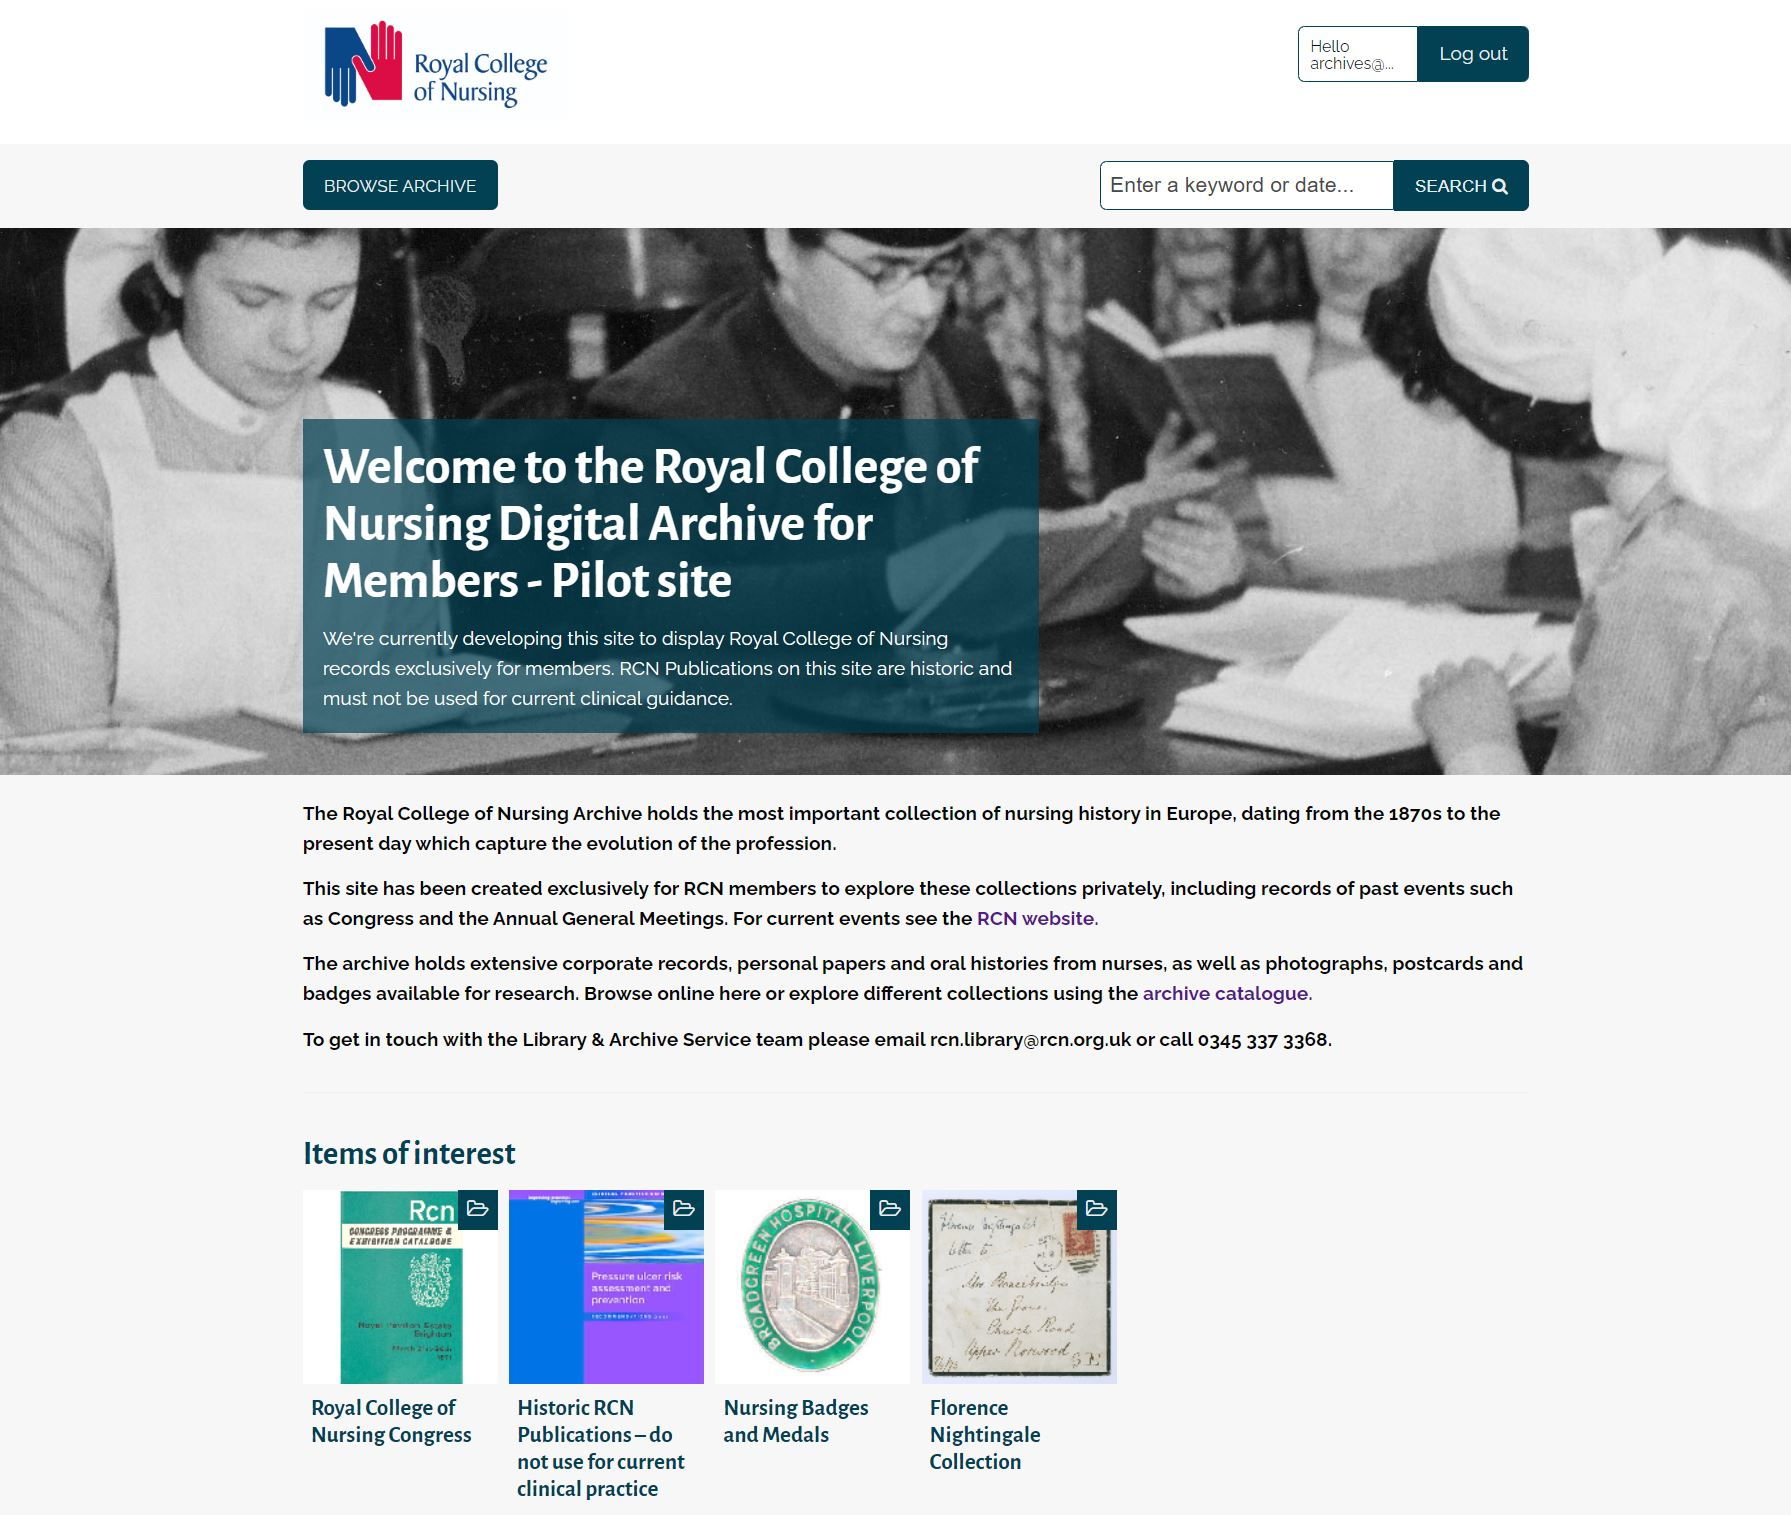 RCN Member digital archive homepage